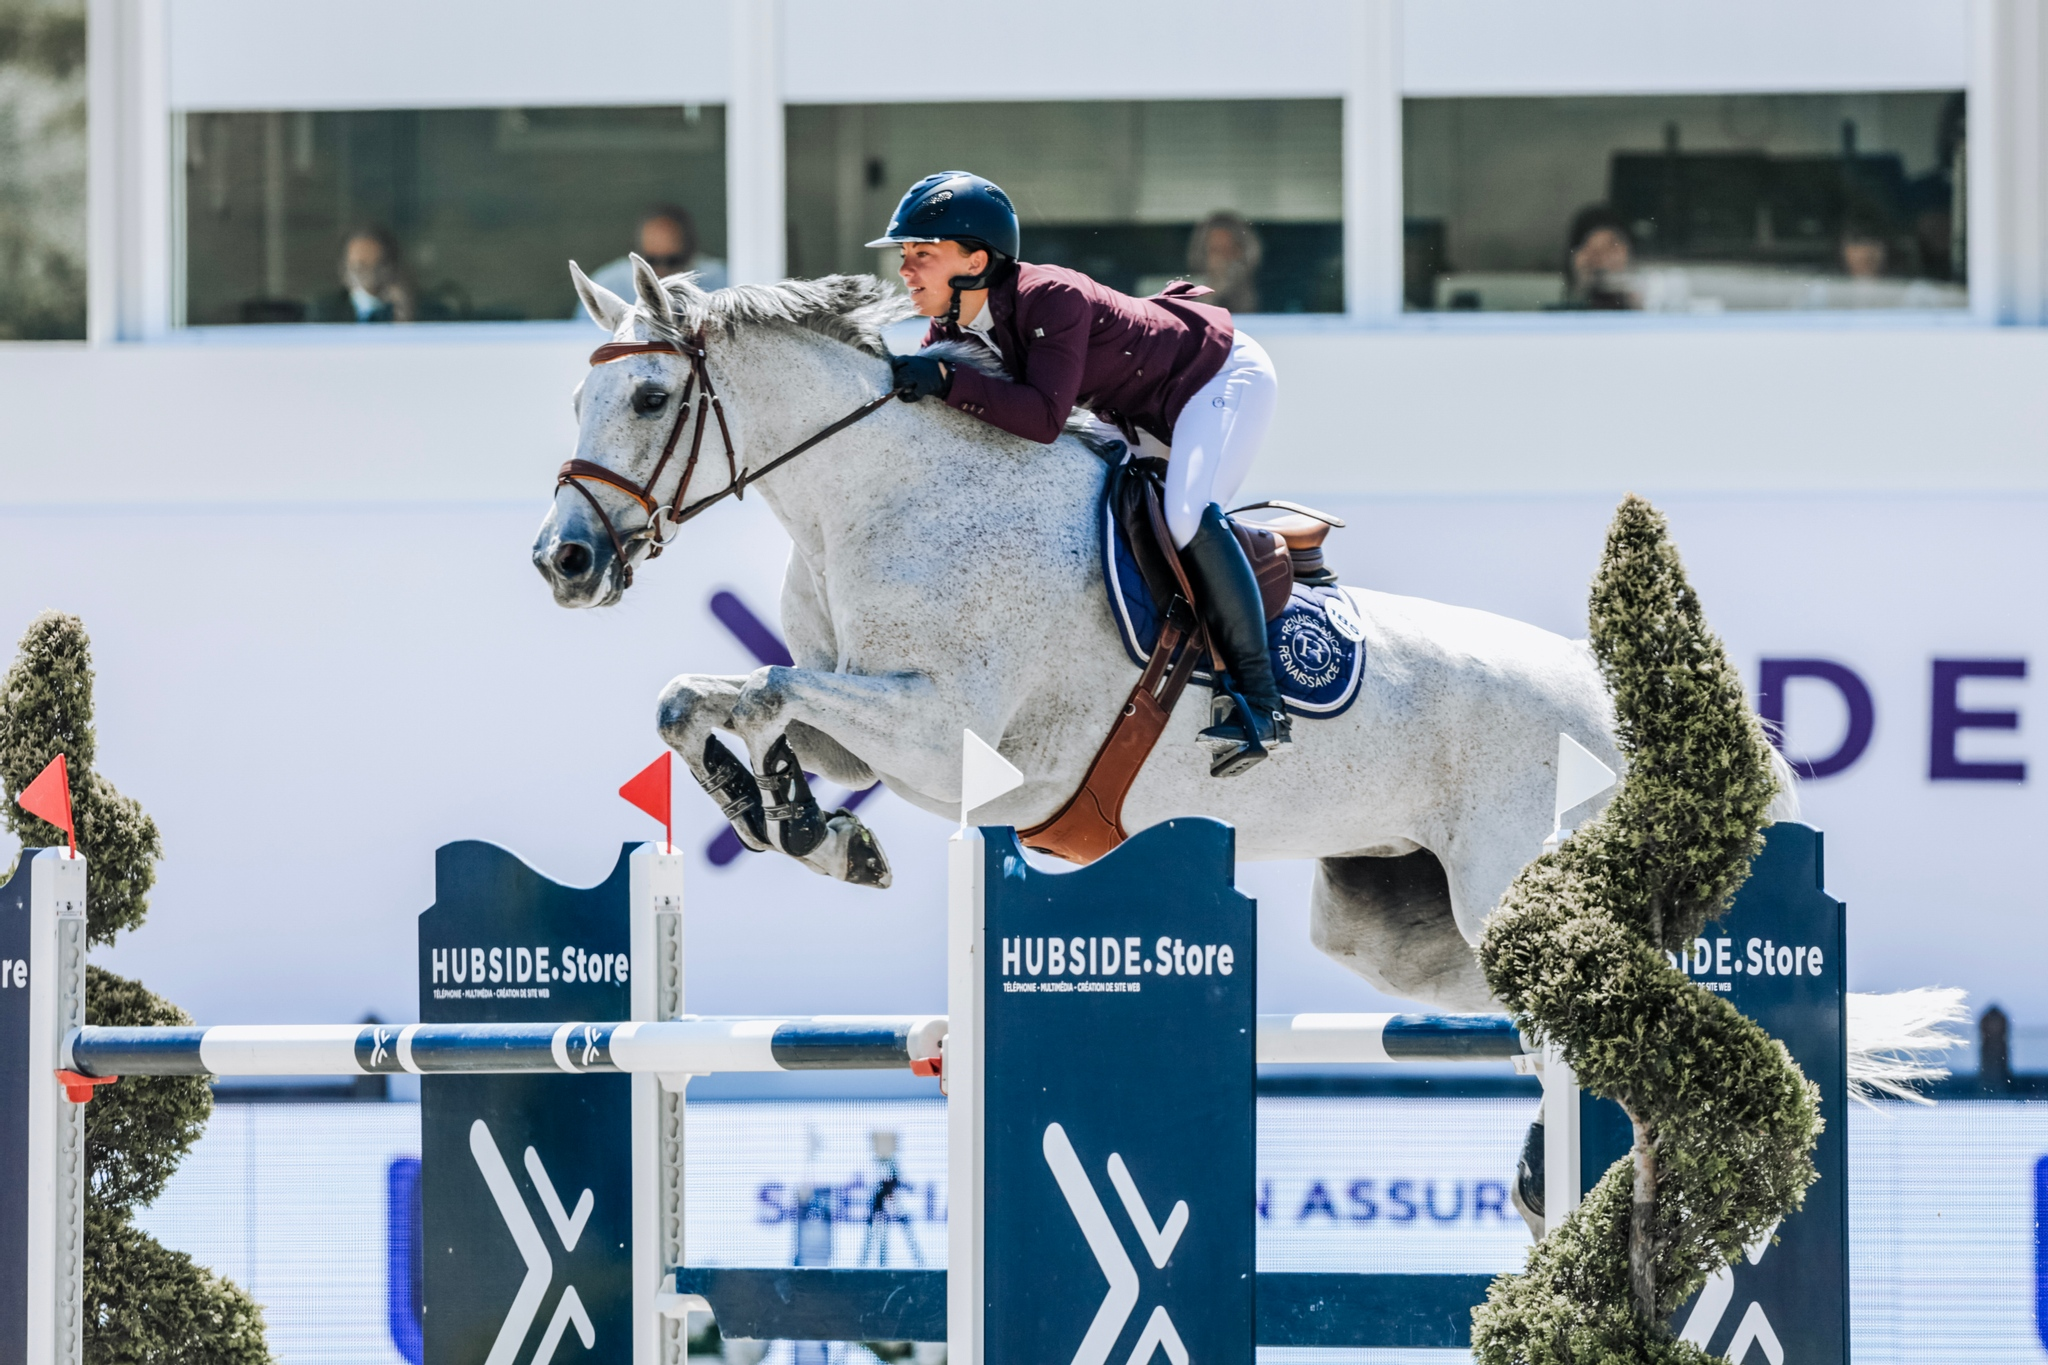 French riders dominate CSI2* Grand Prix of Hubside